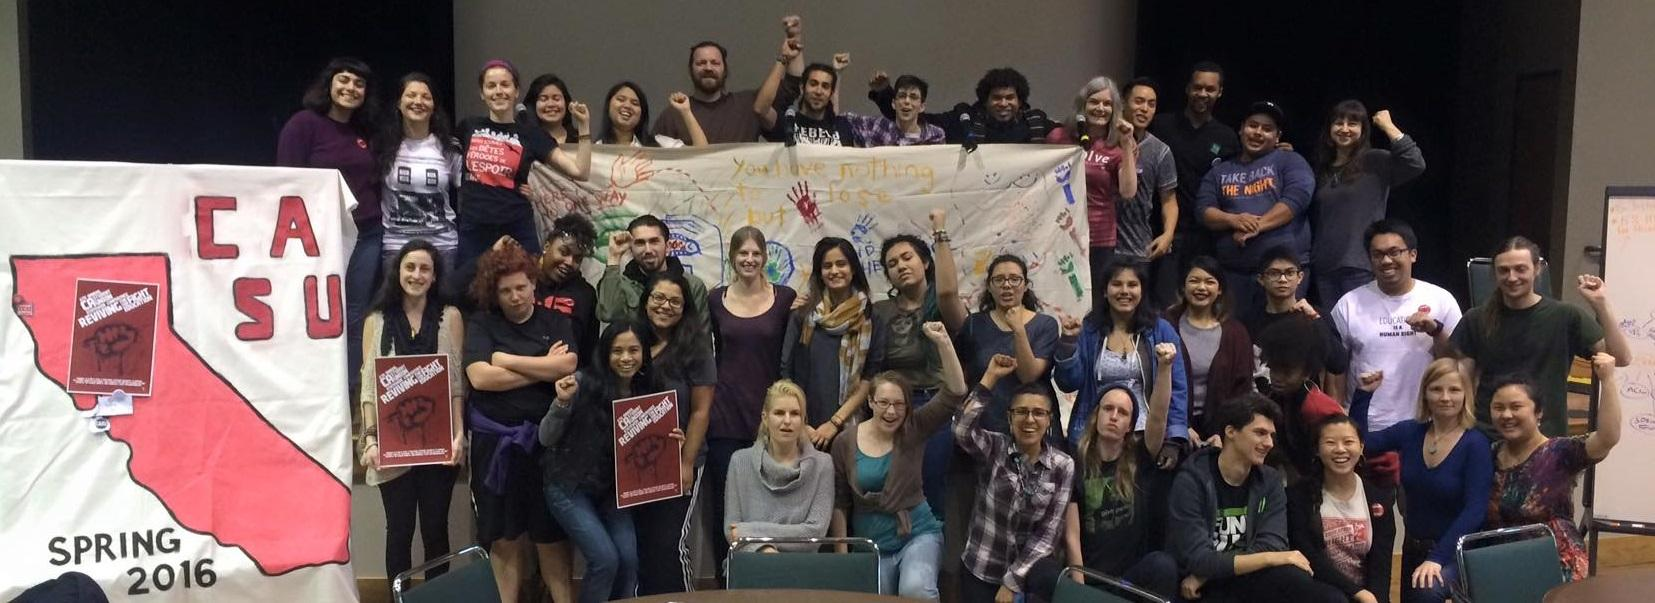 a large group of members of the student union pose with a large banner